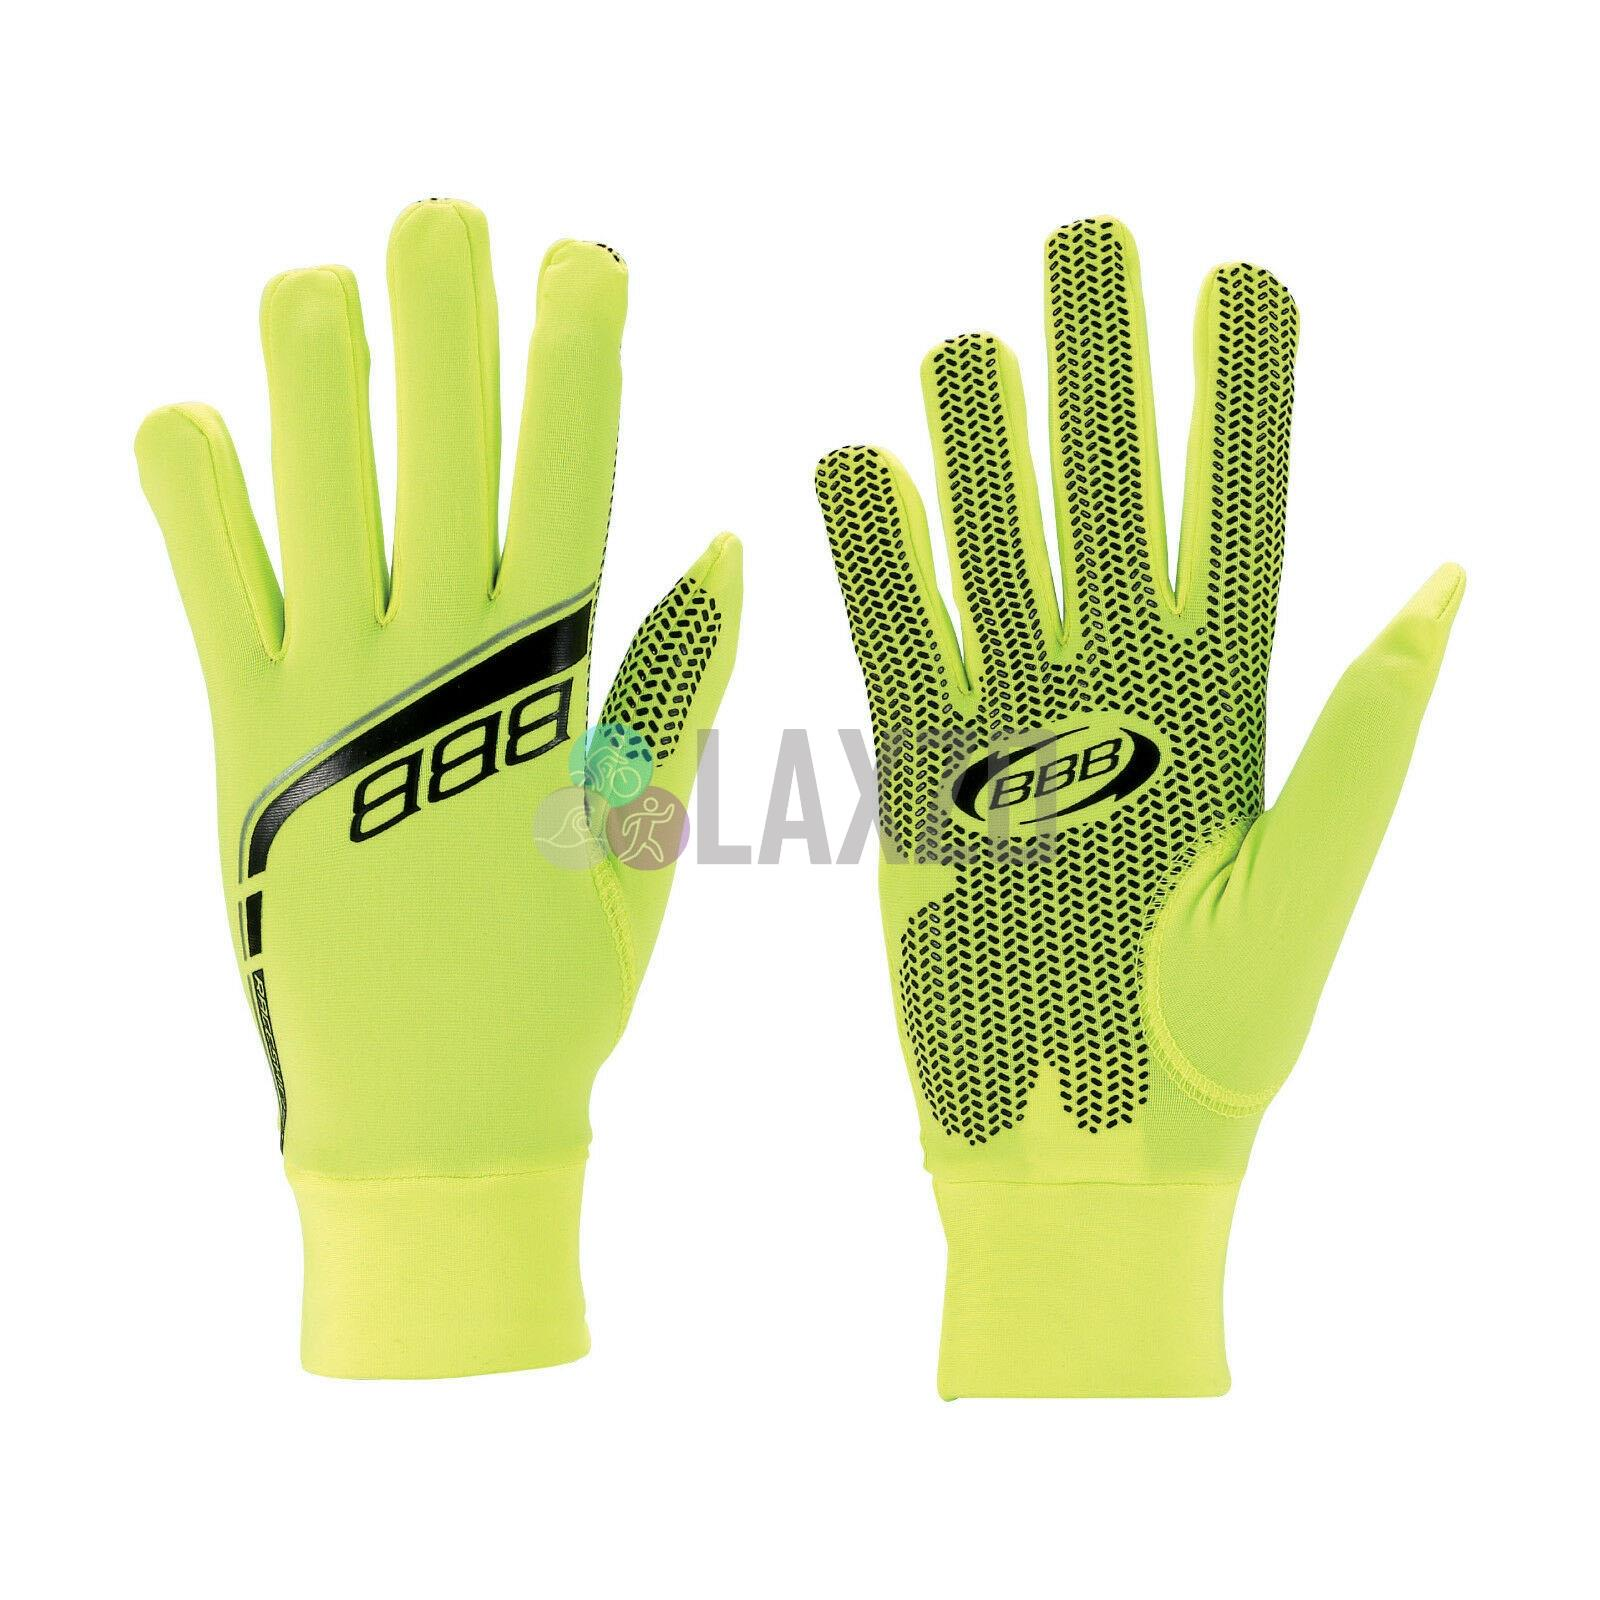 BBB RACE SHIELD WINTER cycling Gloves Warm Safe Bike Cycle NEON YELLOW Large